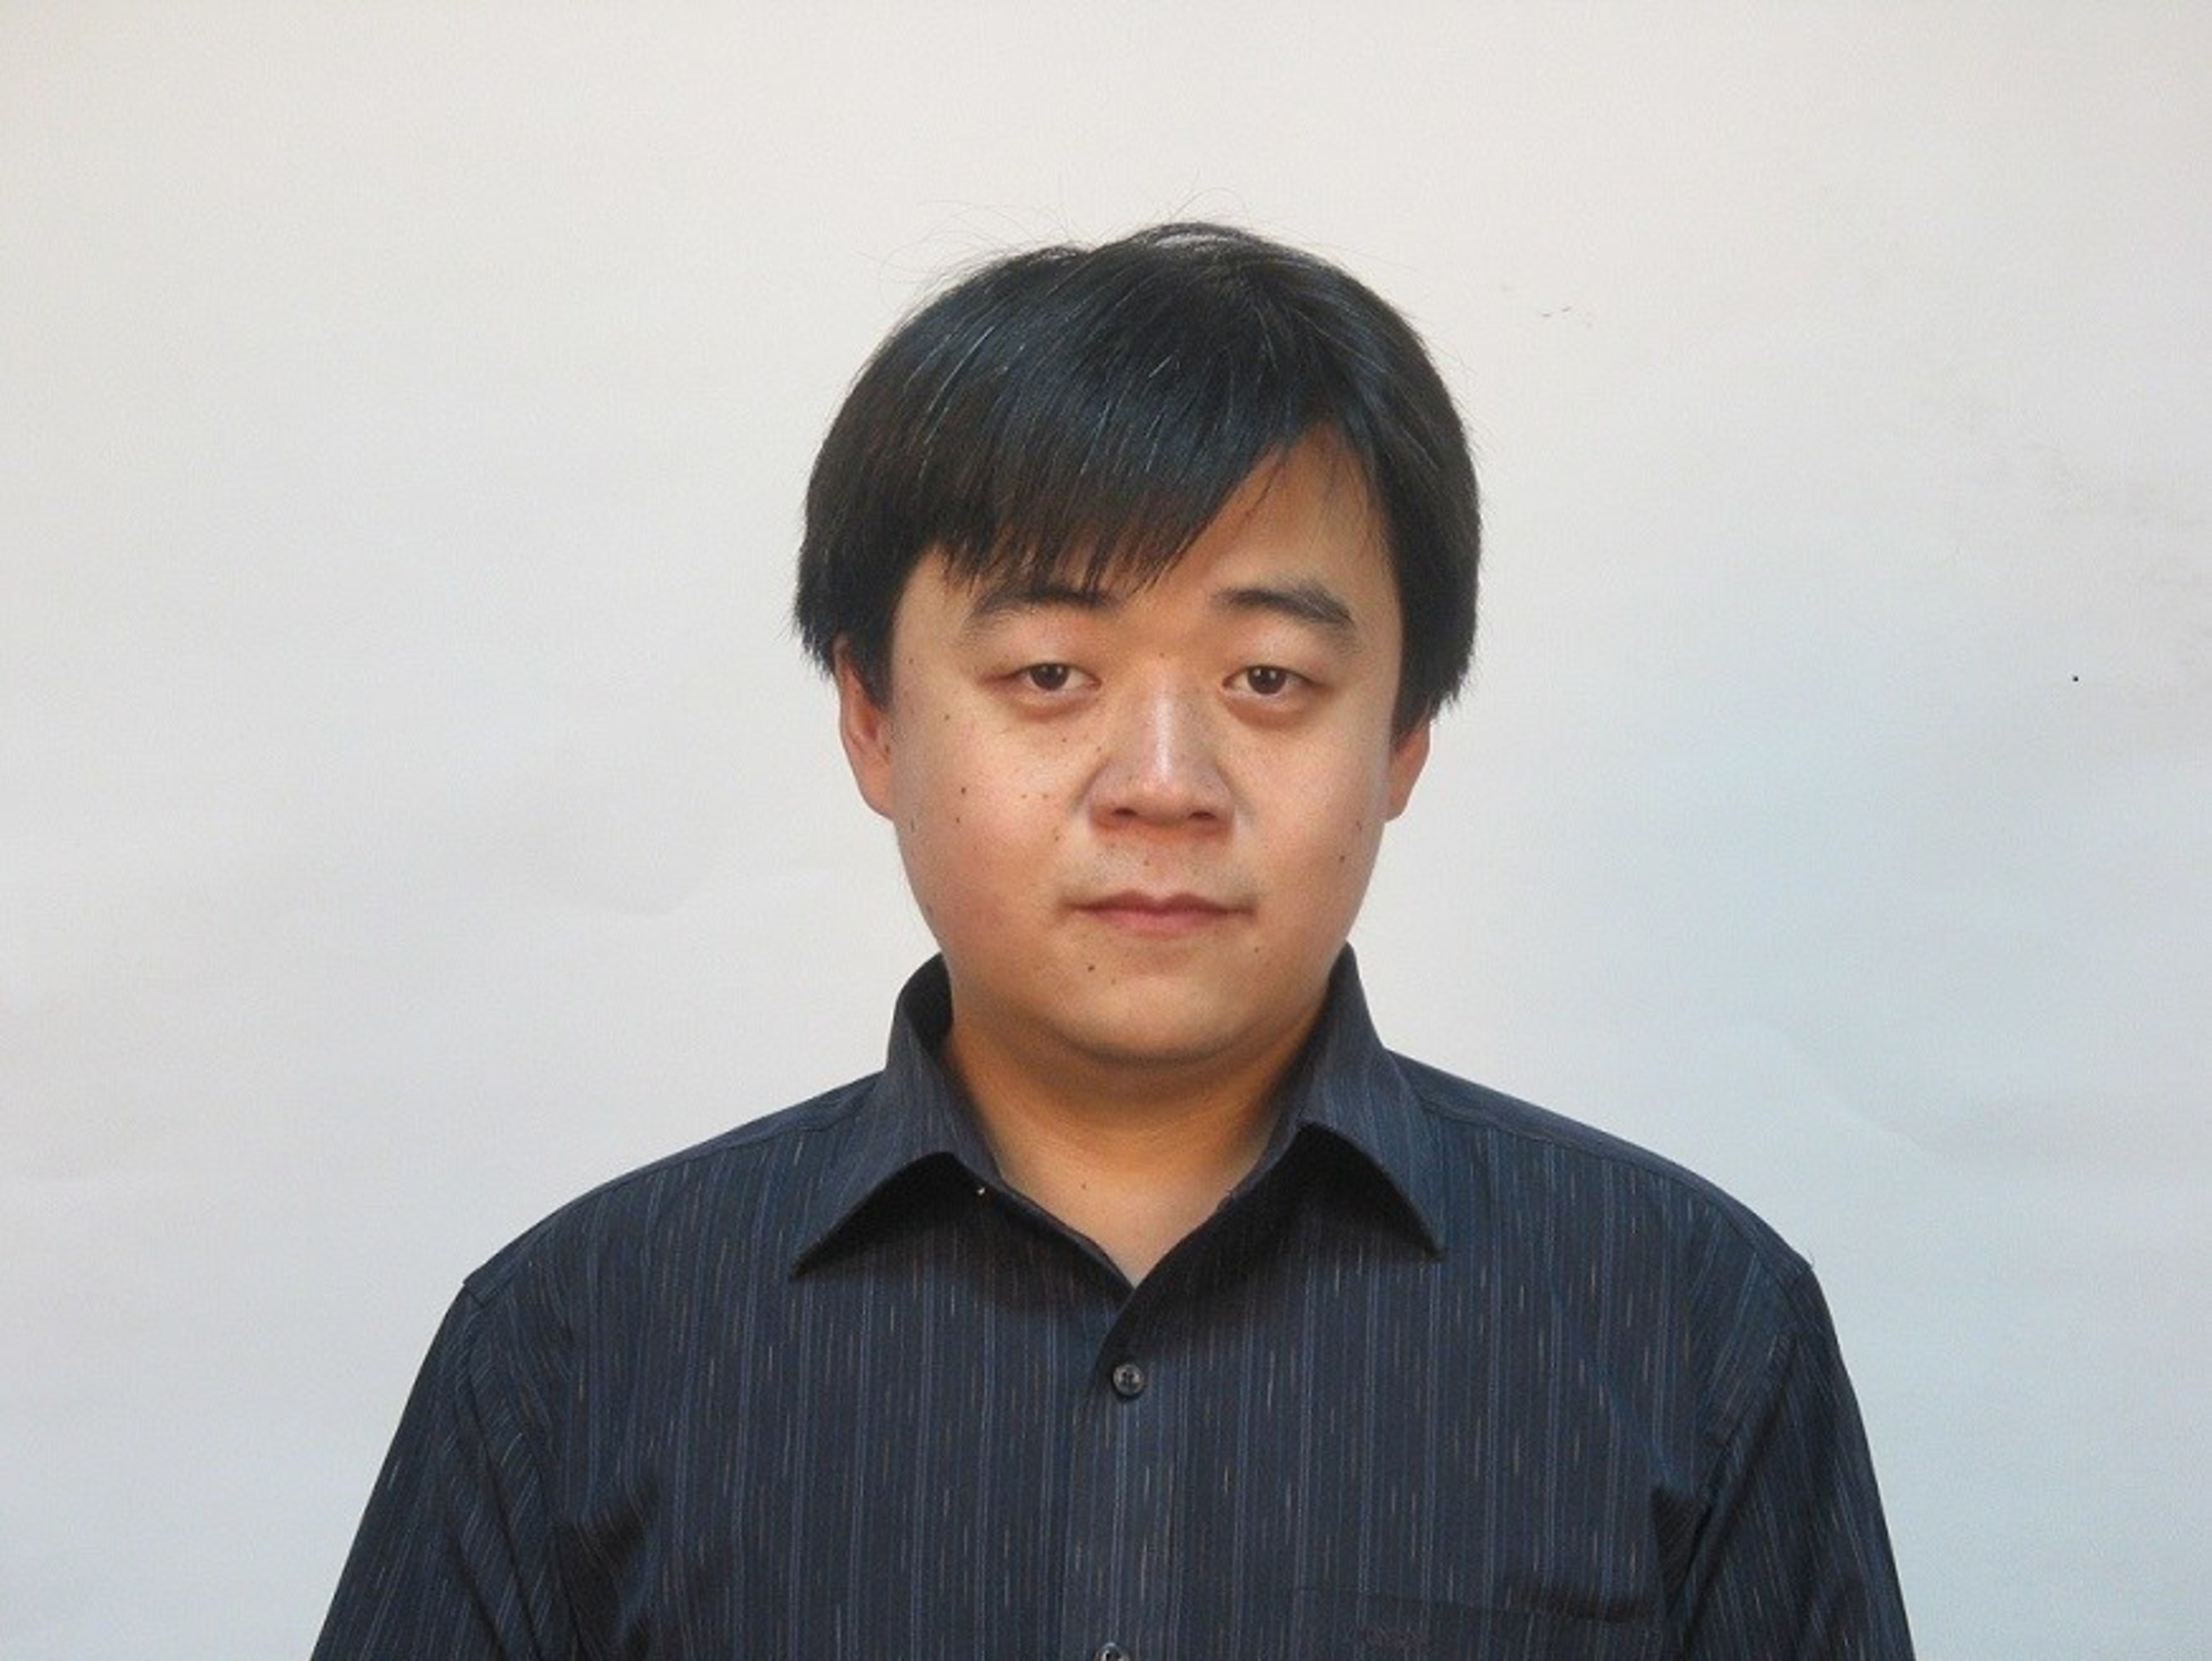 Gerber Technology Appoints Jeff An as Director of Professional Services for China